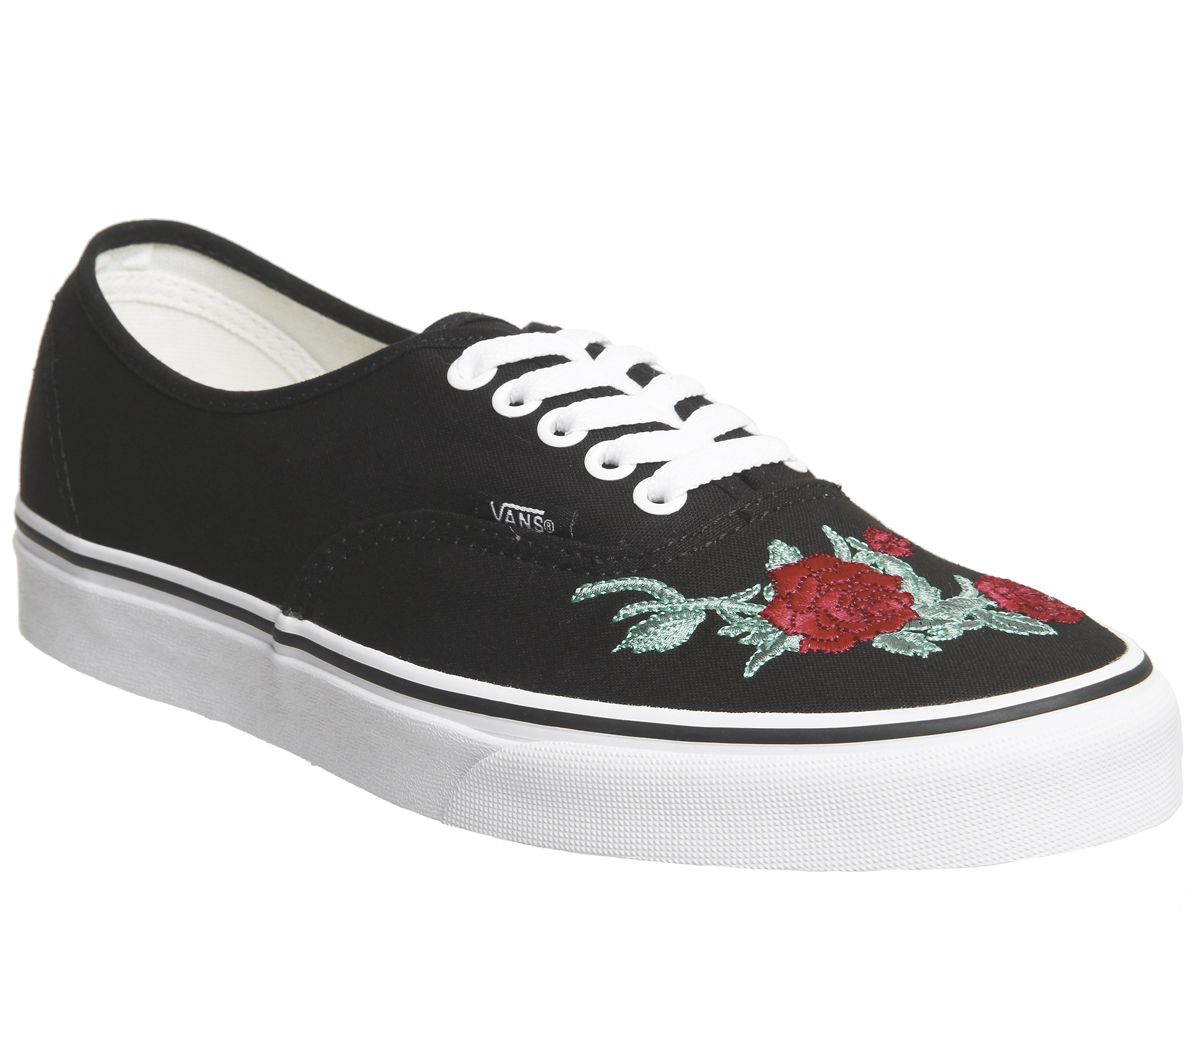 3c5465072adf Vans Authentic Trainers Black Red Rose - Hers trainers